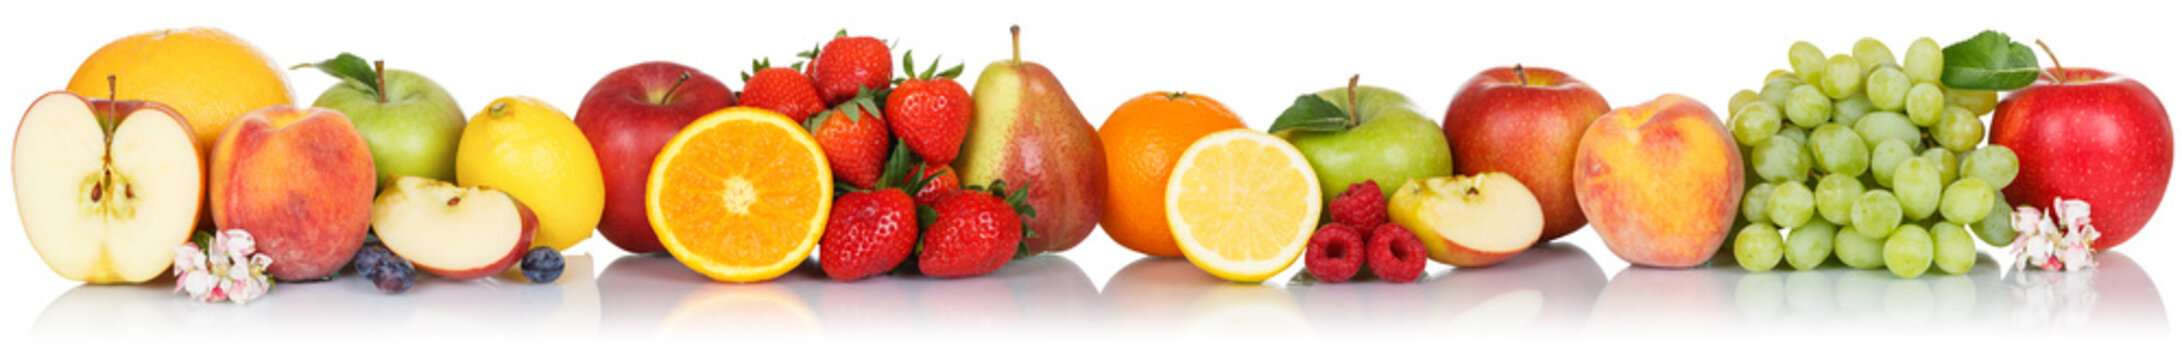 Fruits collection apple apples orange berries grapes banner fresh fruit isolated on white in a row